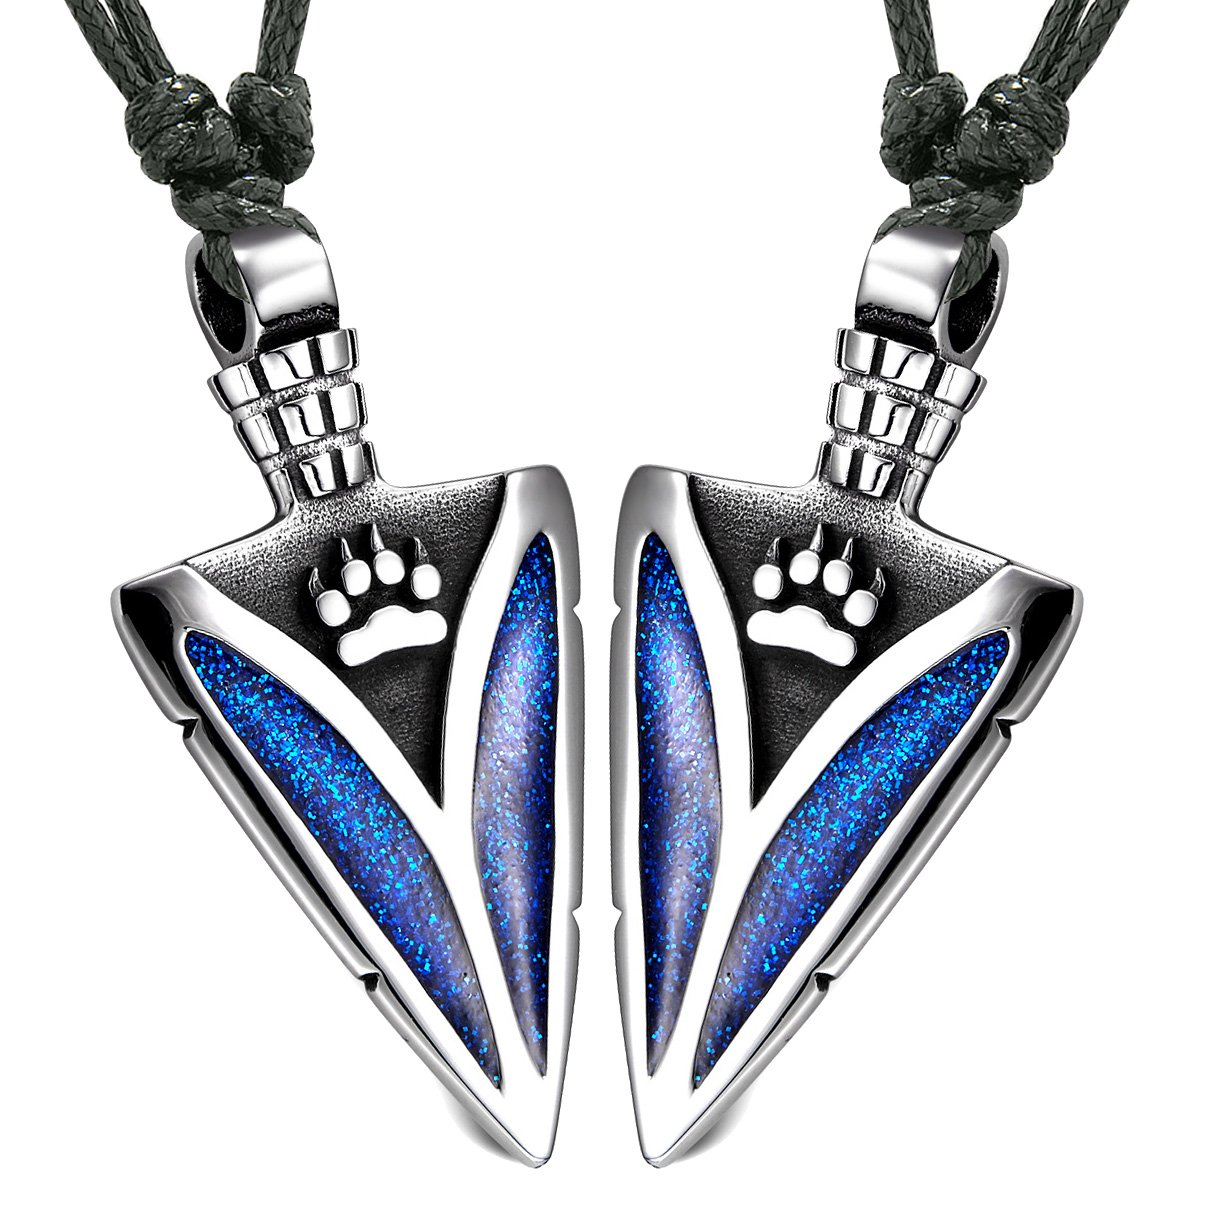 Arrowhead Wild Wolf Paw Love Couples Best Friends Set Amulets Sparkling Royal Blue Adjustable Necklaces